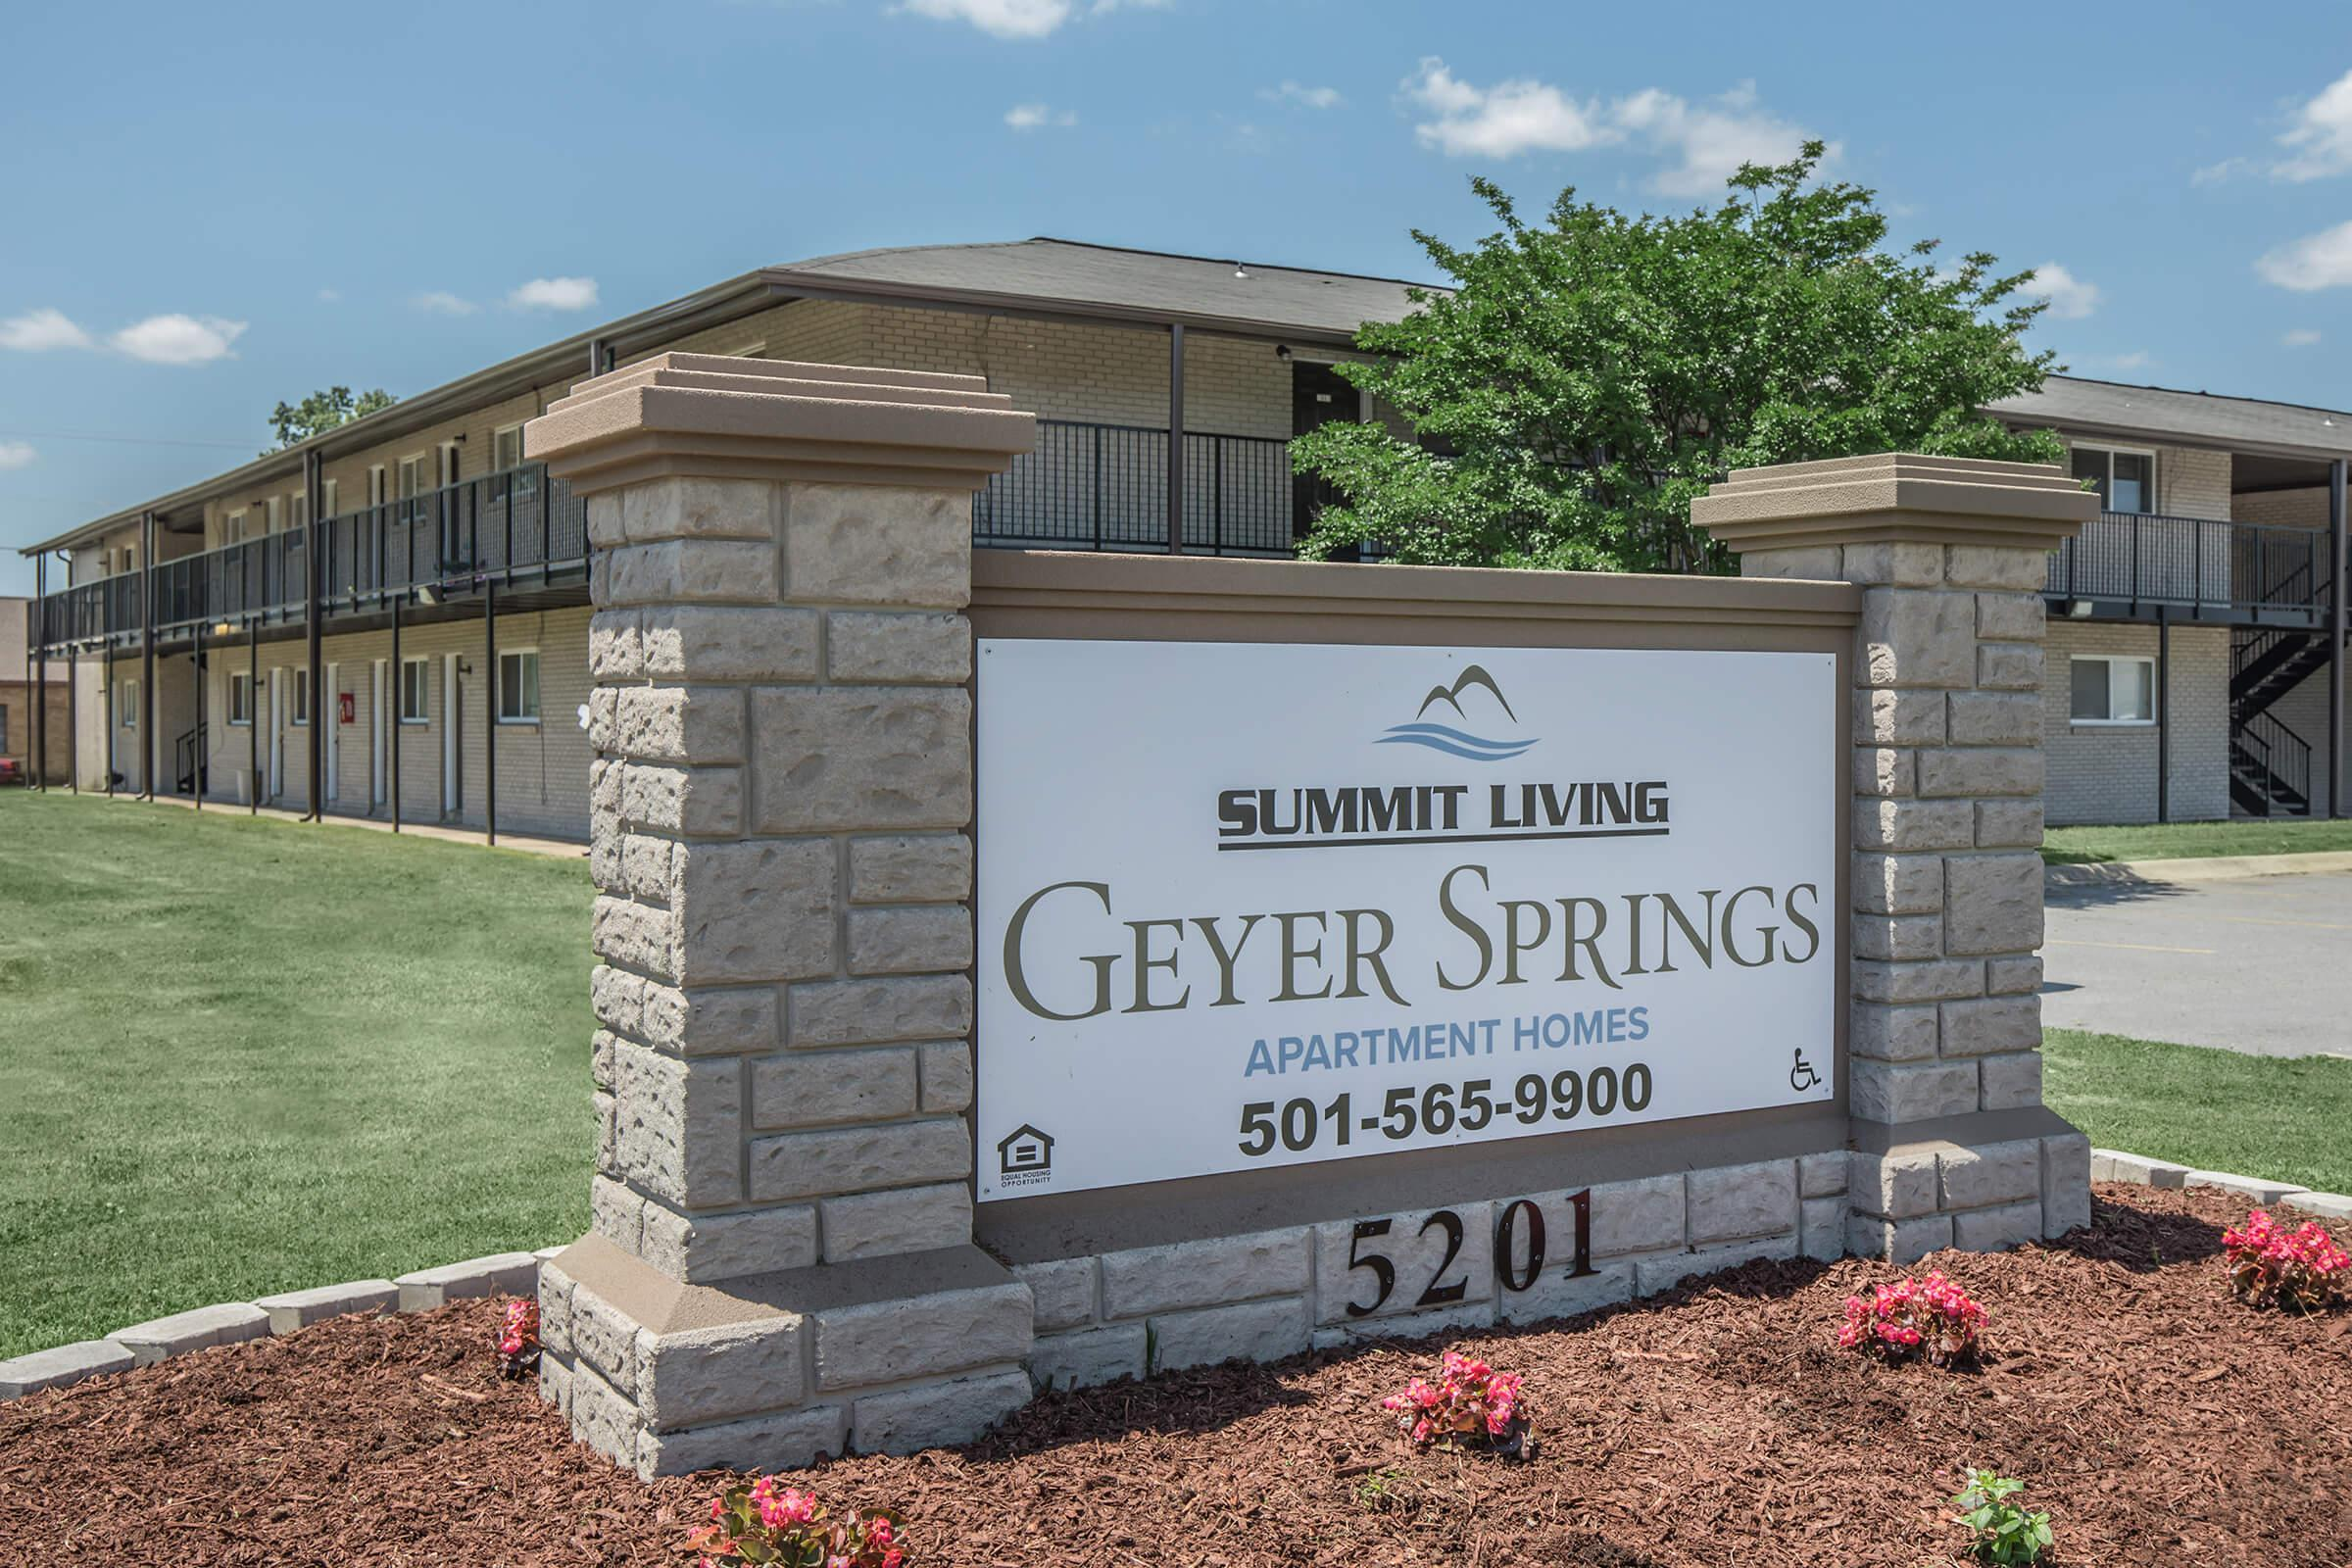 Summit Living Geyer Springs Apartment Homes - Affordable Community